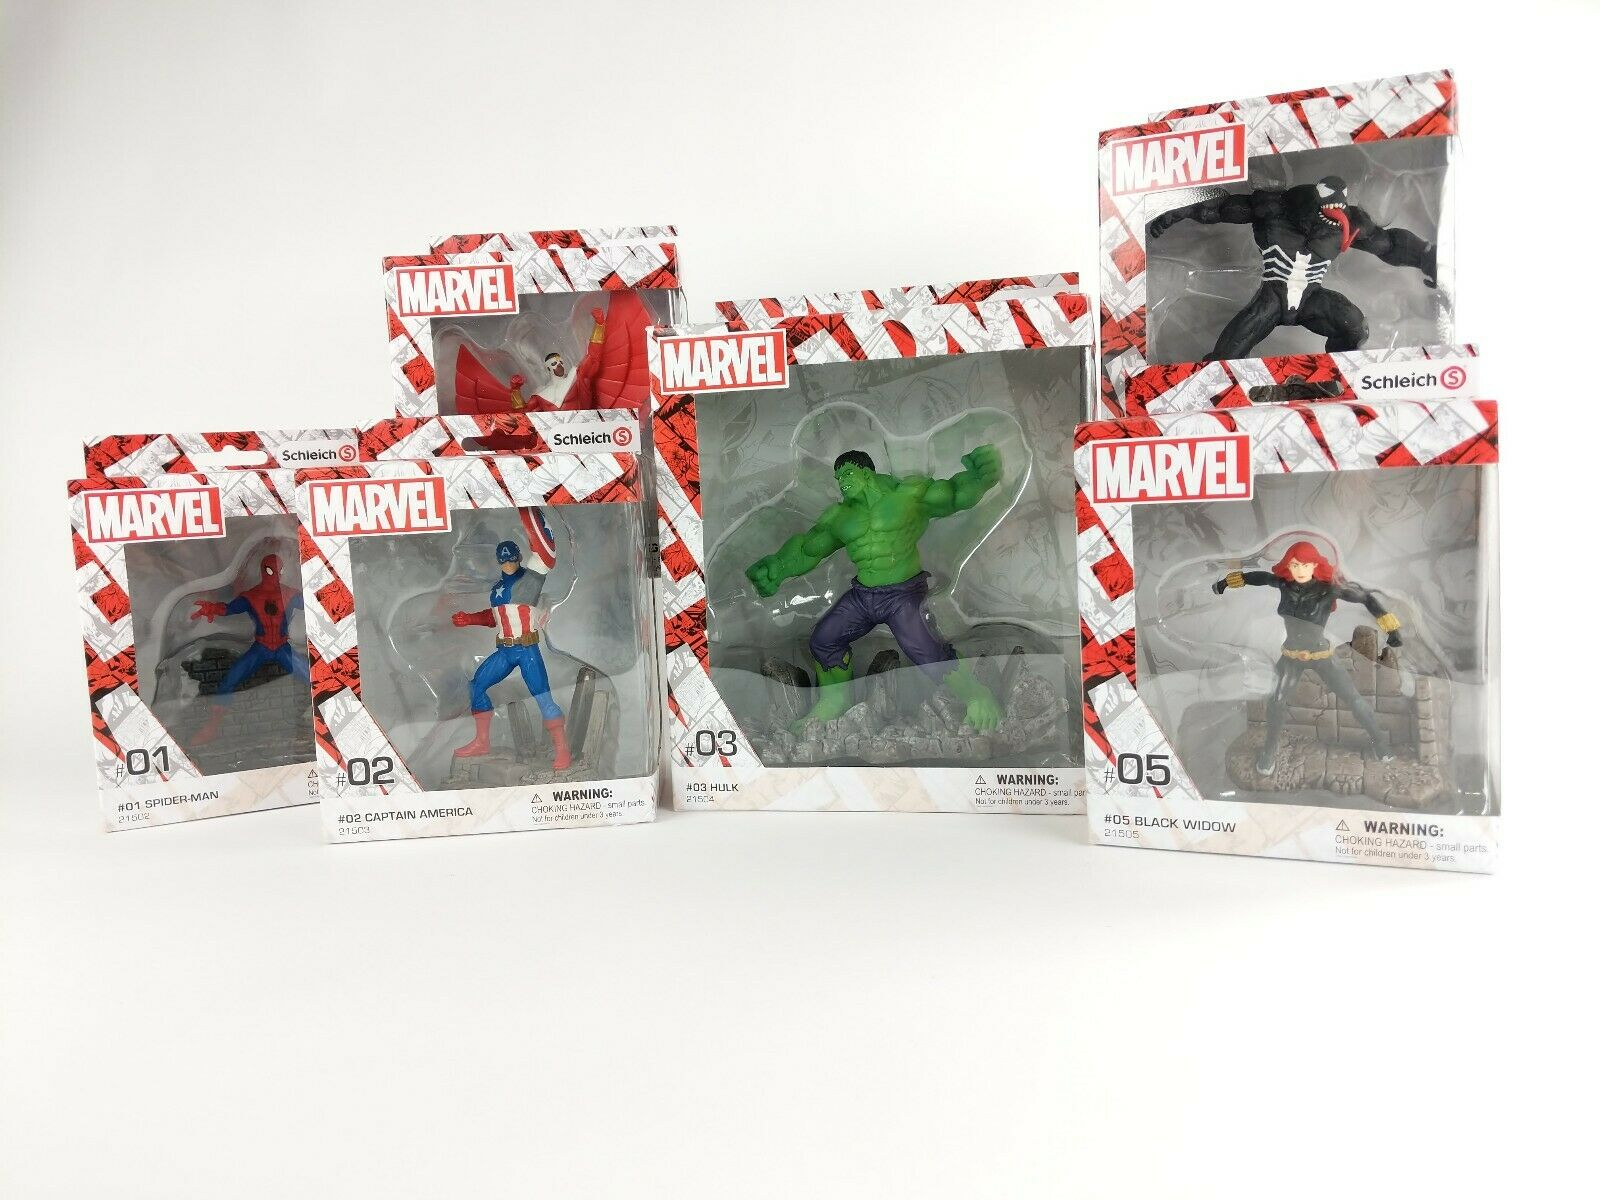 NEW & SEALED Marvel Comics by Schleich Hand-painted Figurine Set-SHIPS WORLDWIDE